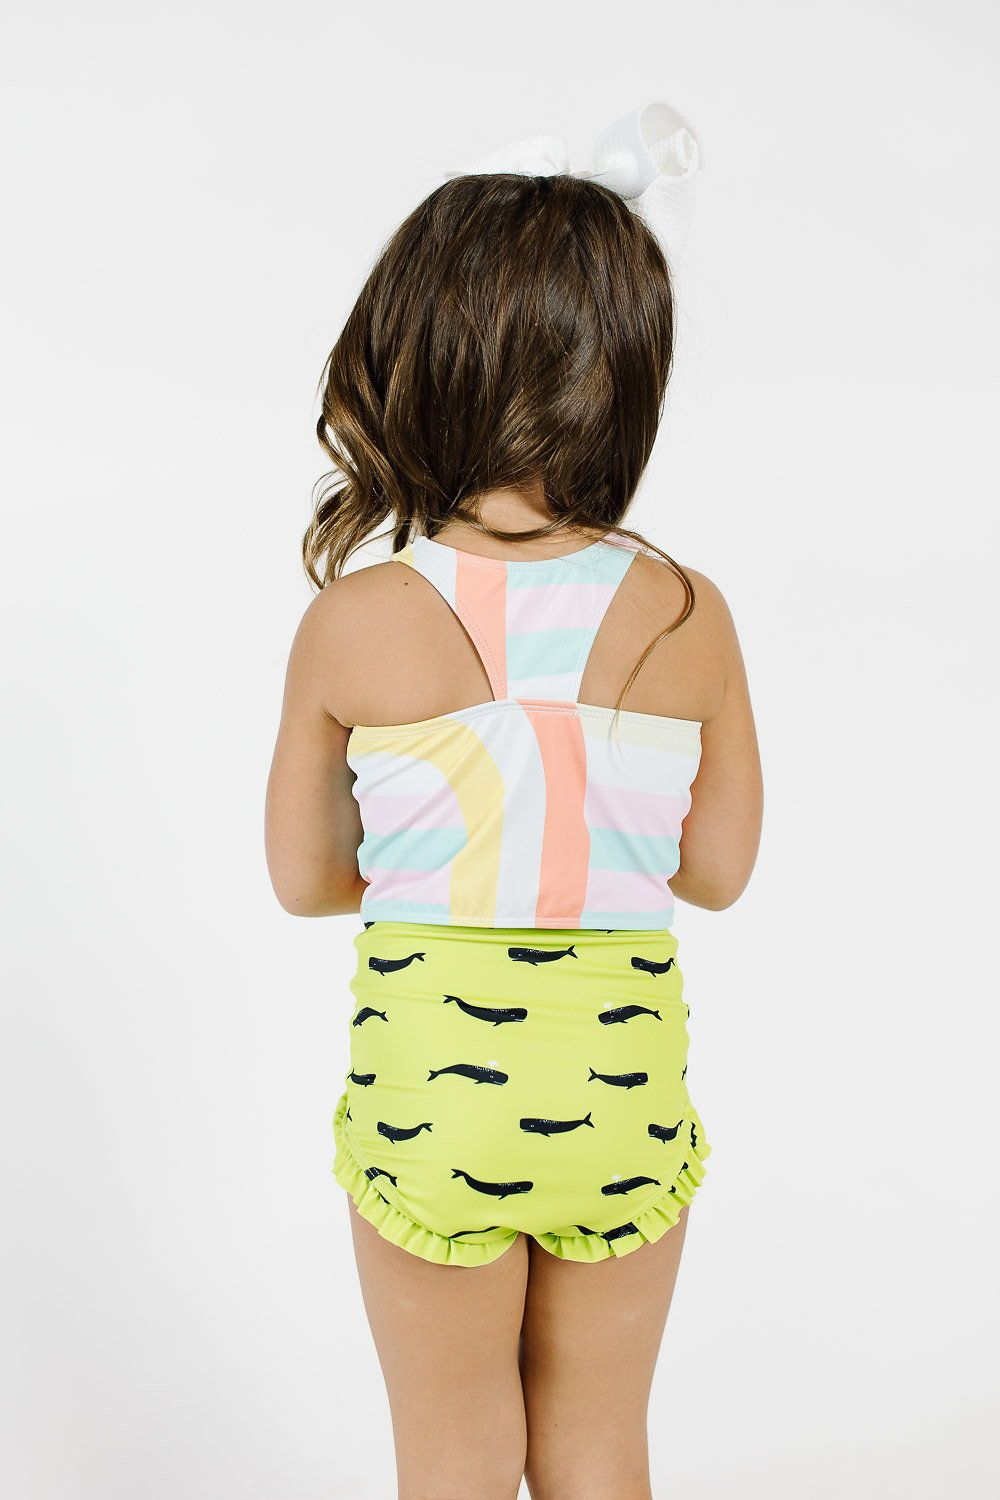 289a1d39aadaa Kortni Jeane    Kortni Jeane Swimmers    High Waisted Swimsuits    Little  Girls Swim    Modest Swimwear    Mini Racer Back Top    Mini All Ruffled Up  ...